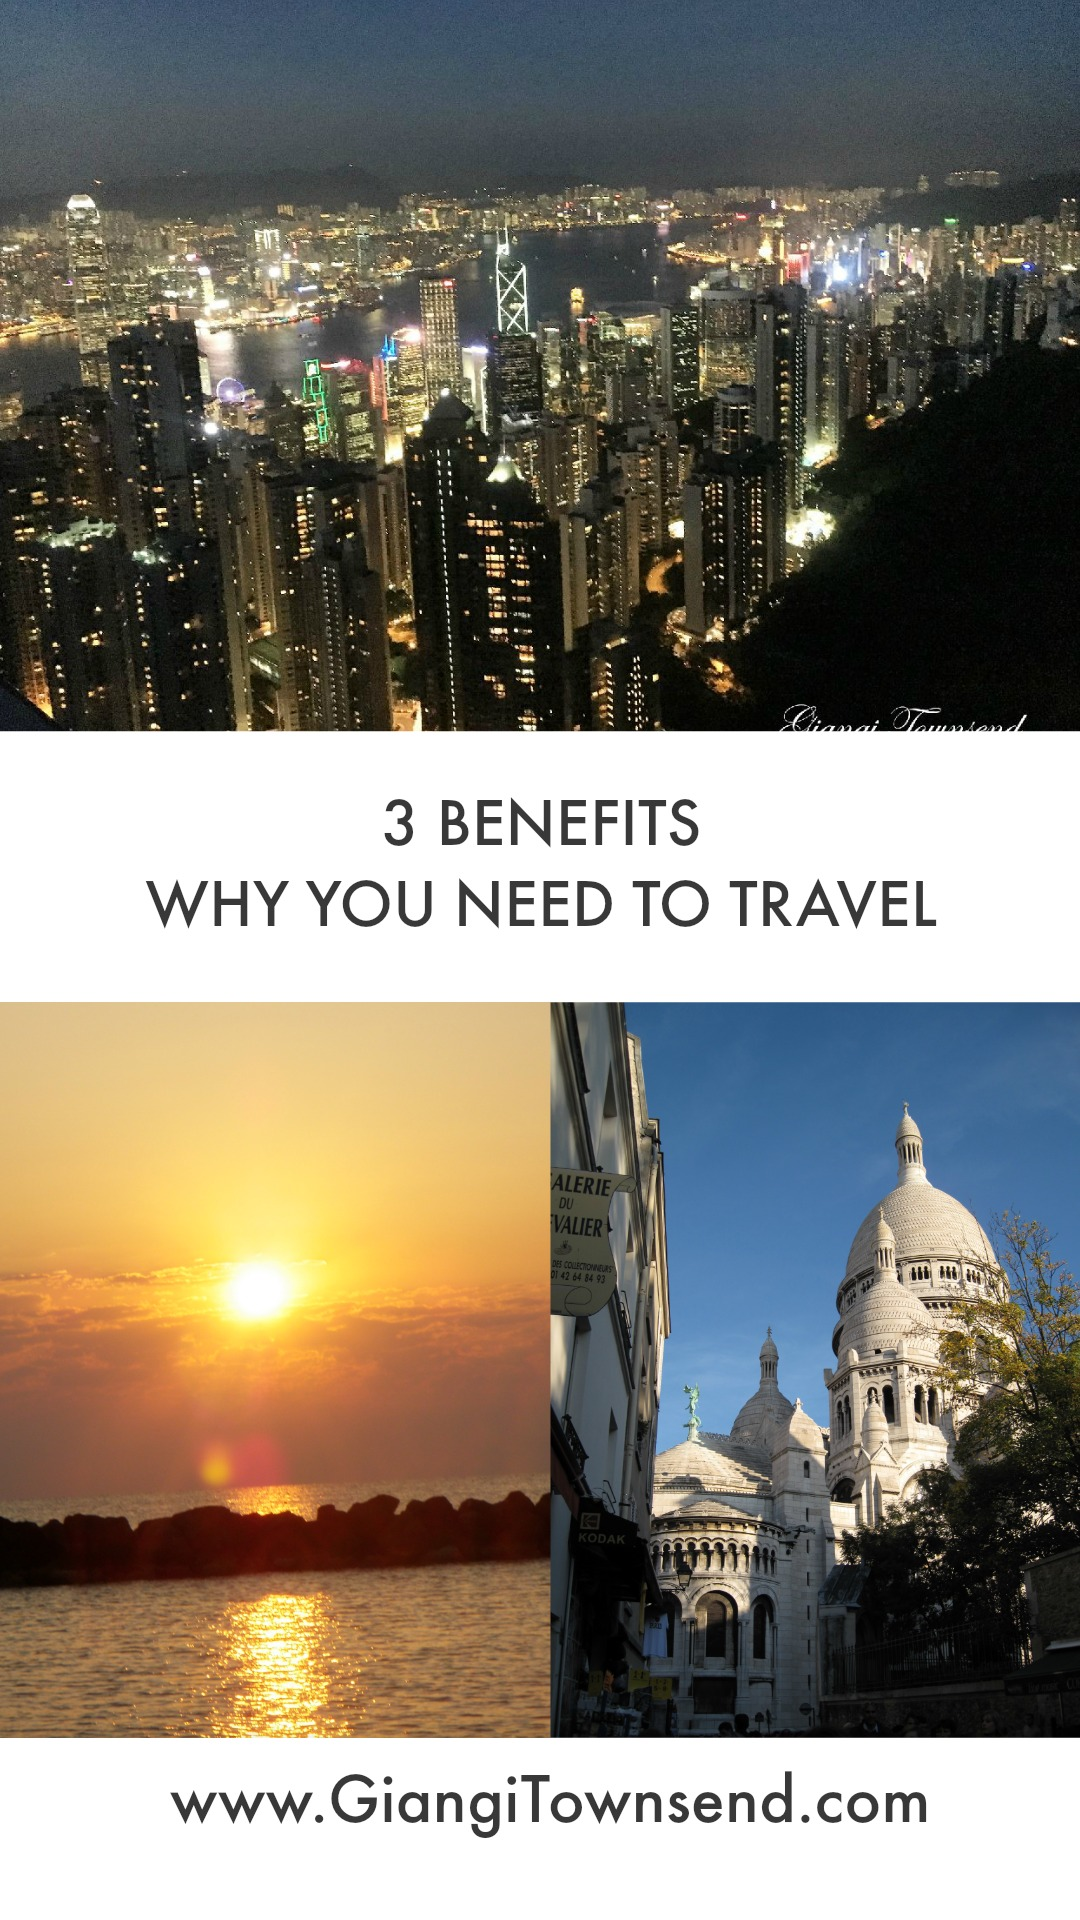 3 benefits why you need to travel